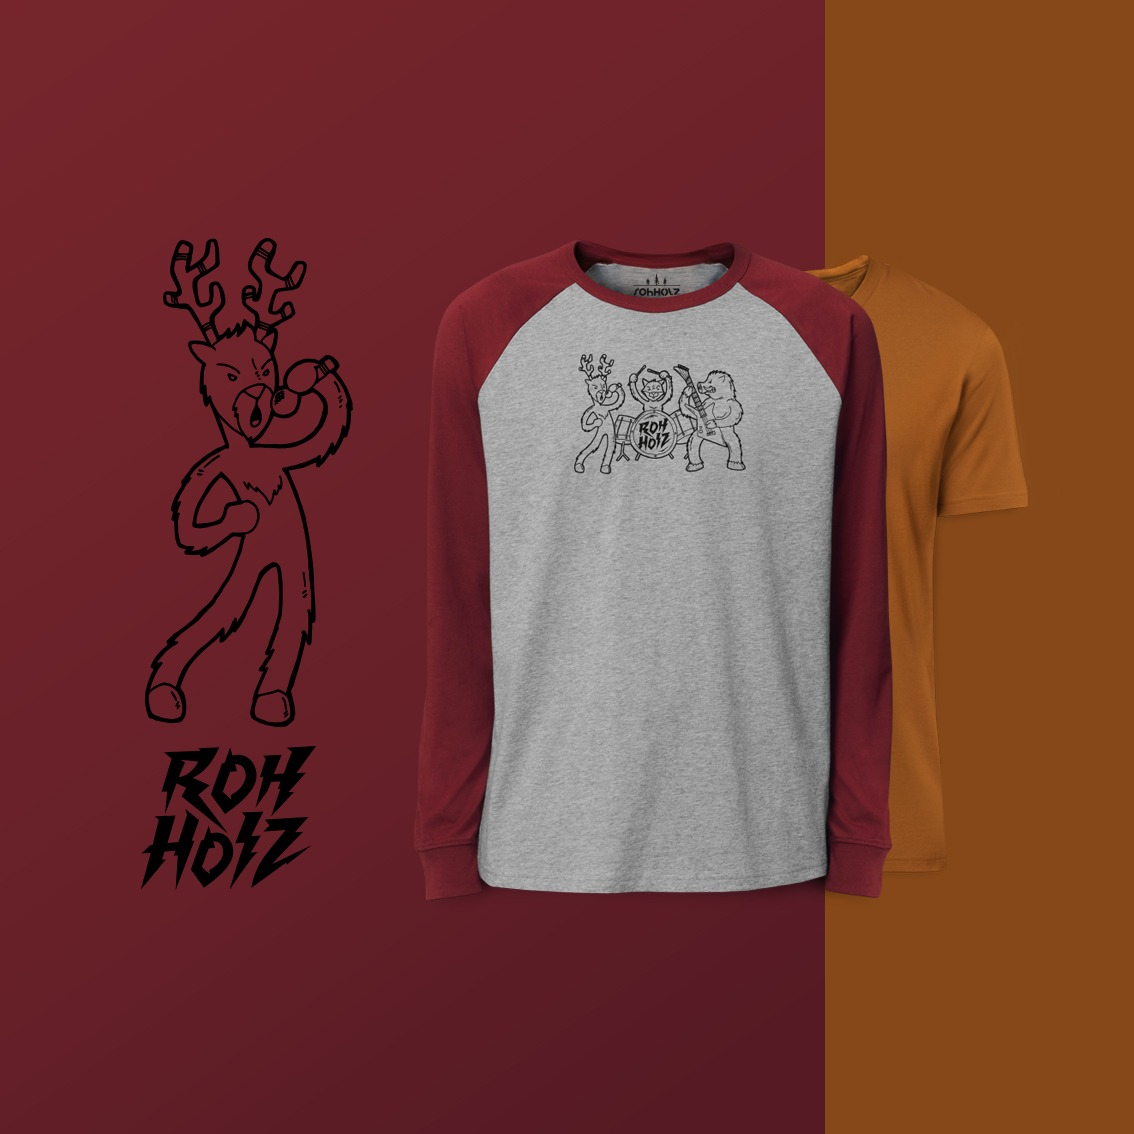 Rohholz Animal Band T-Shirt & Animal Band Longsleeve